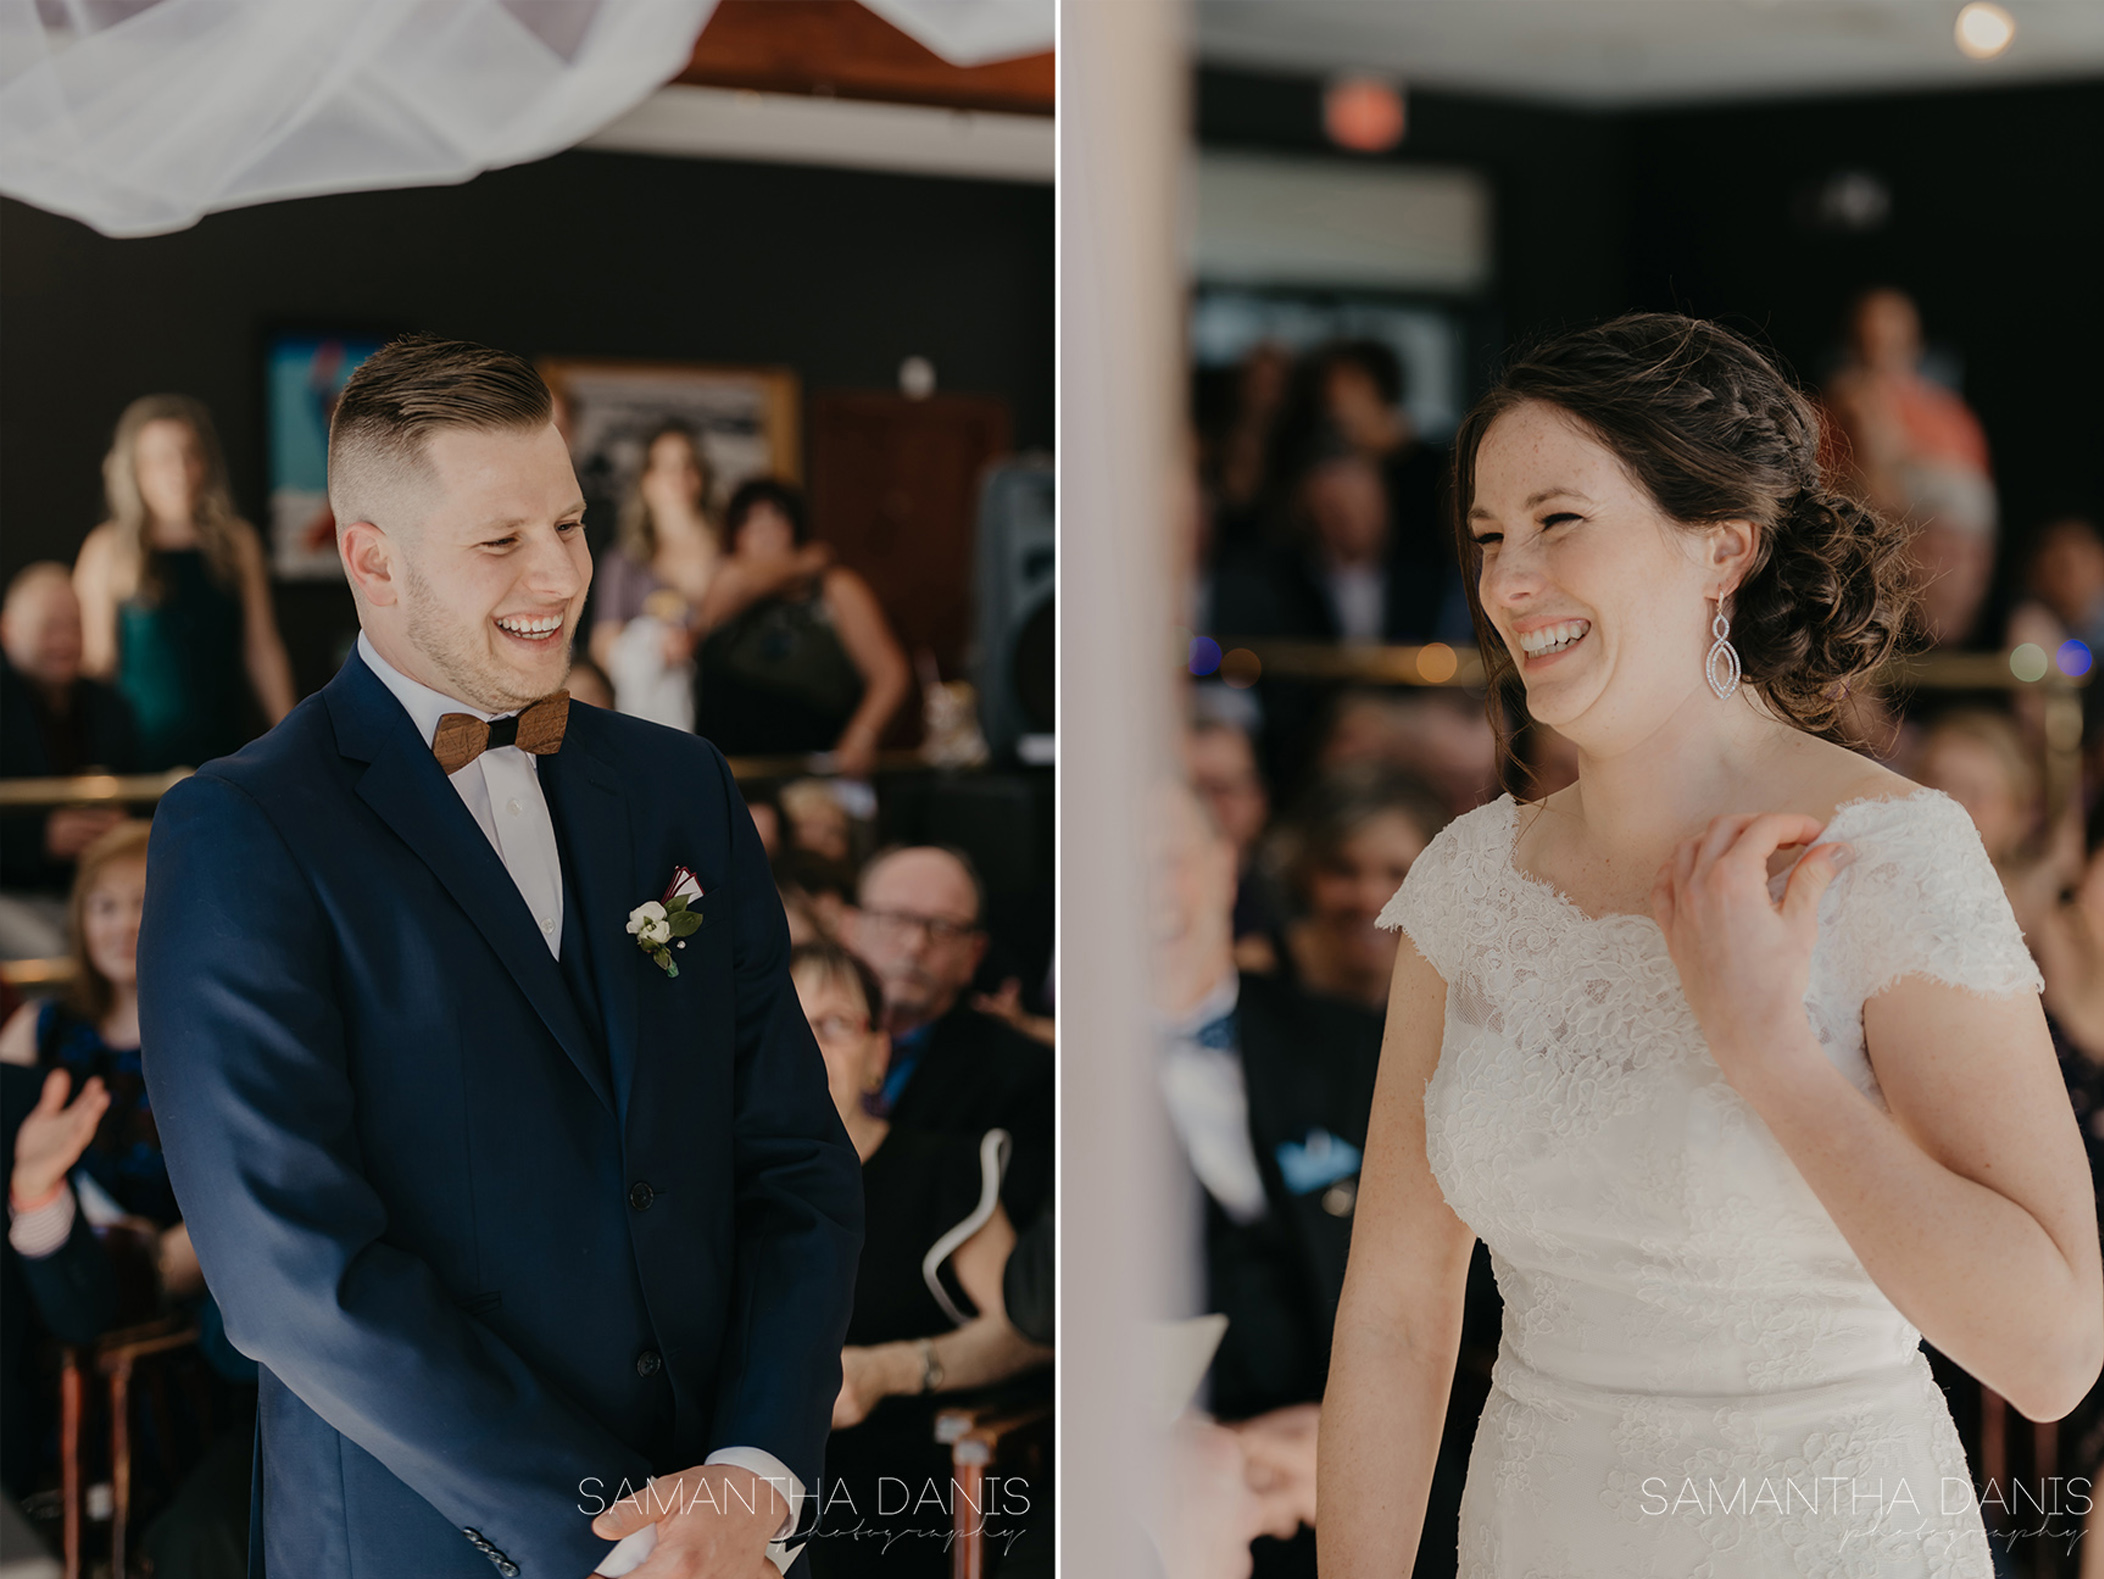 Samantha Danis Photography Ottawa Wedding Photographer Montreal Wedding Ottawa Ski